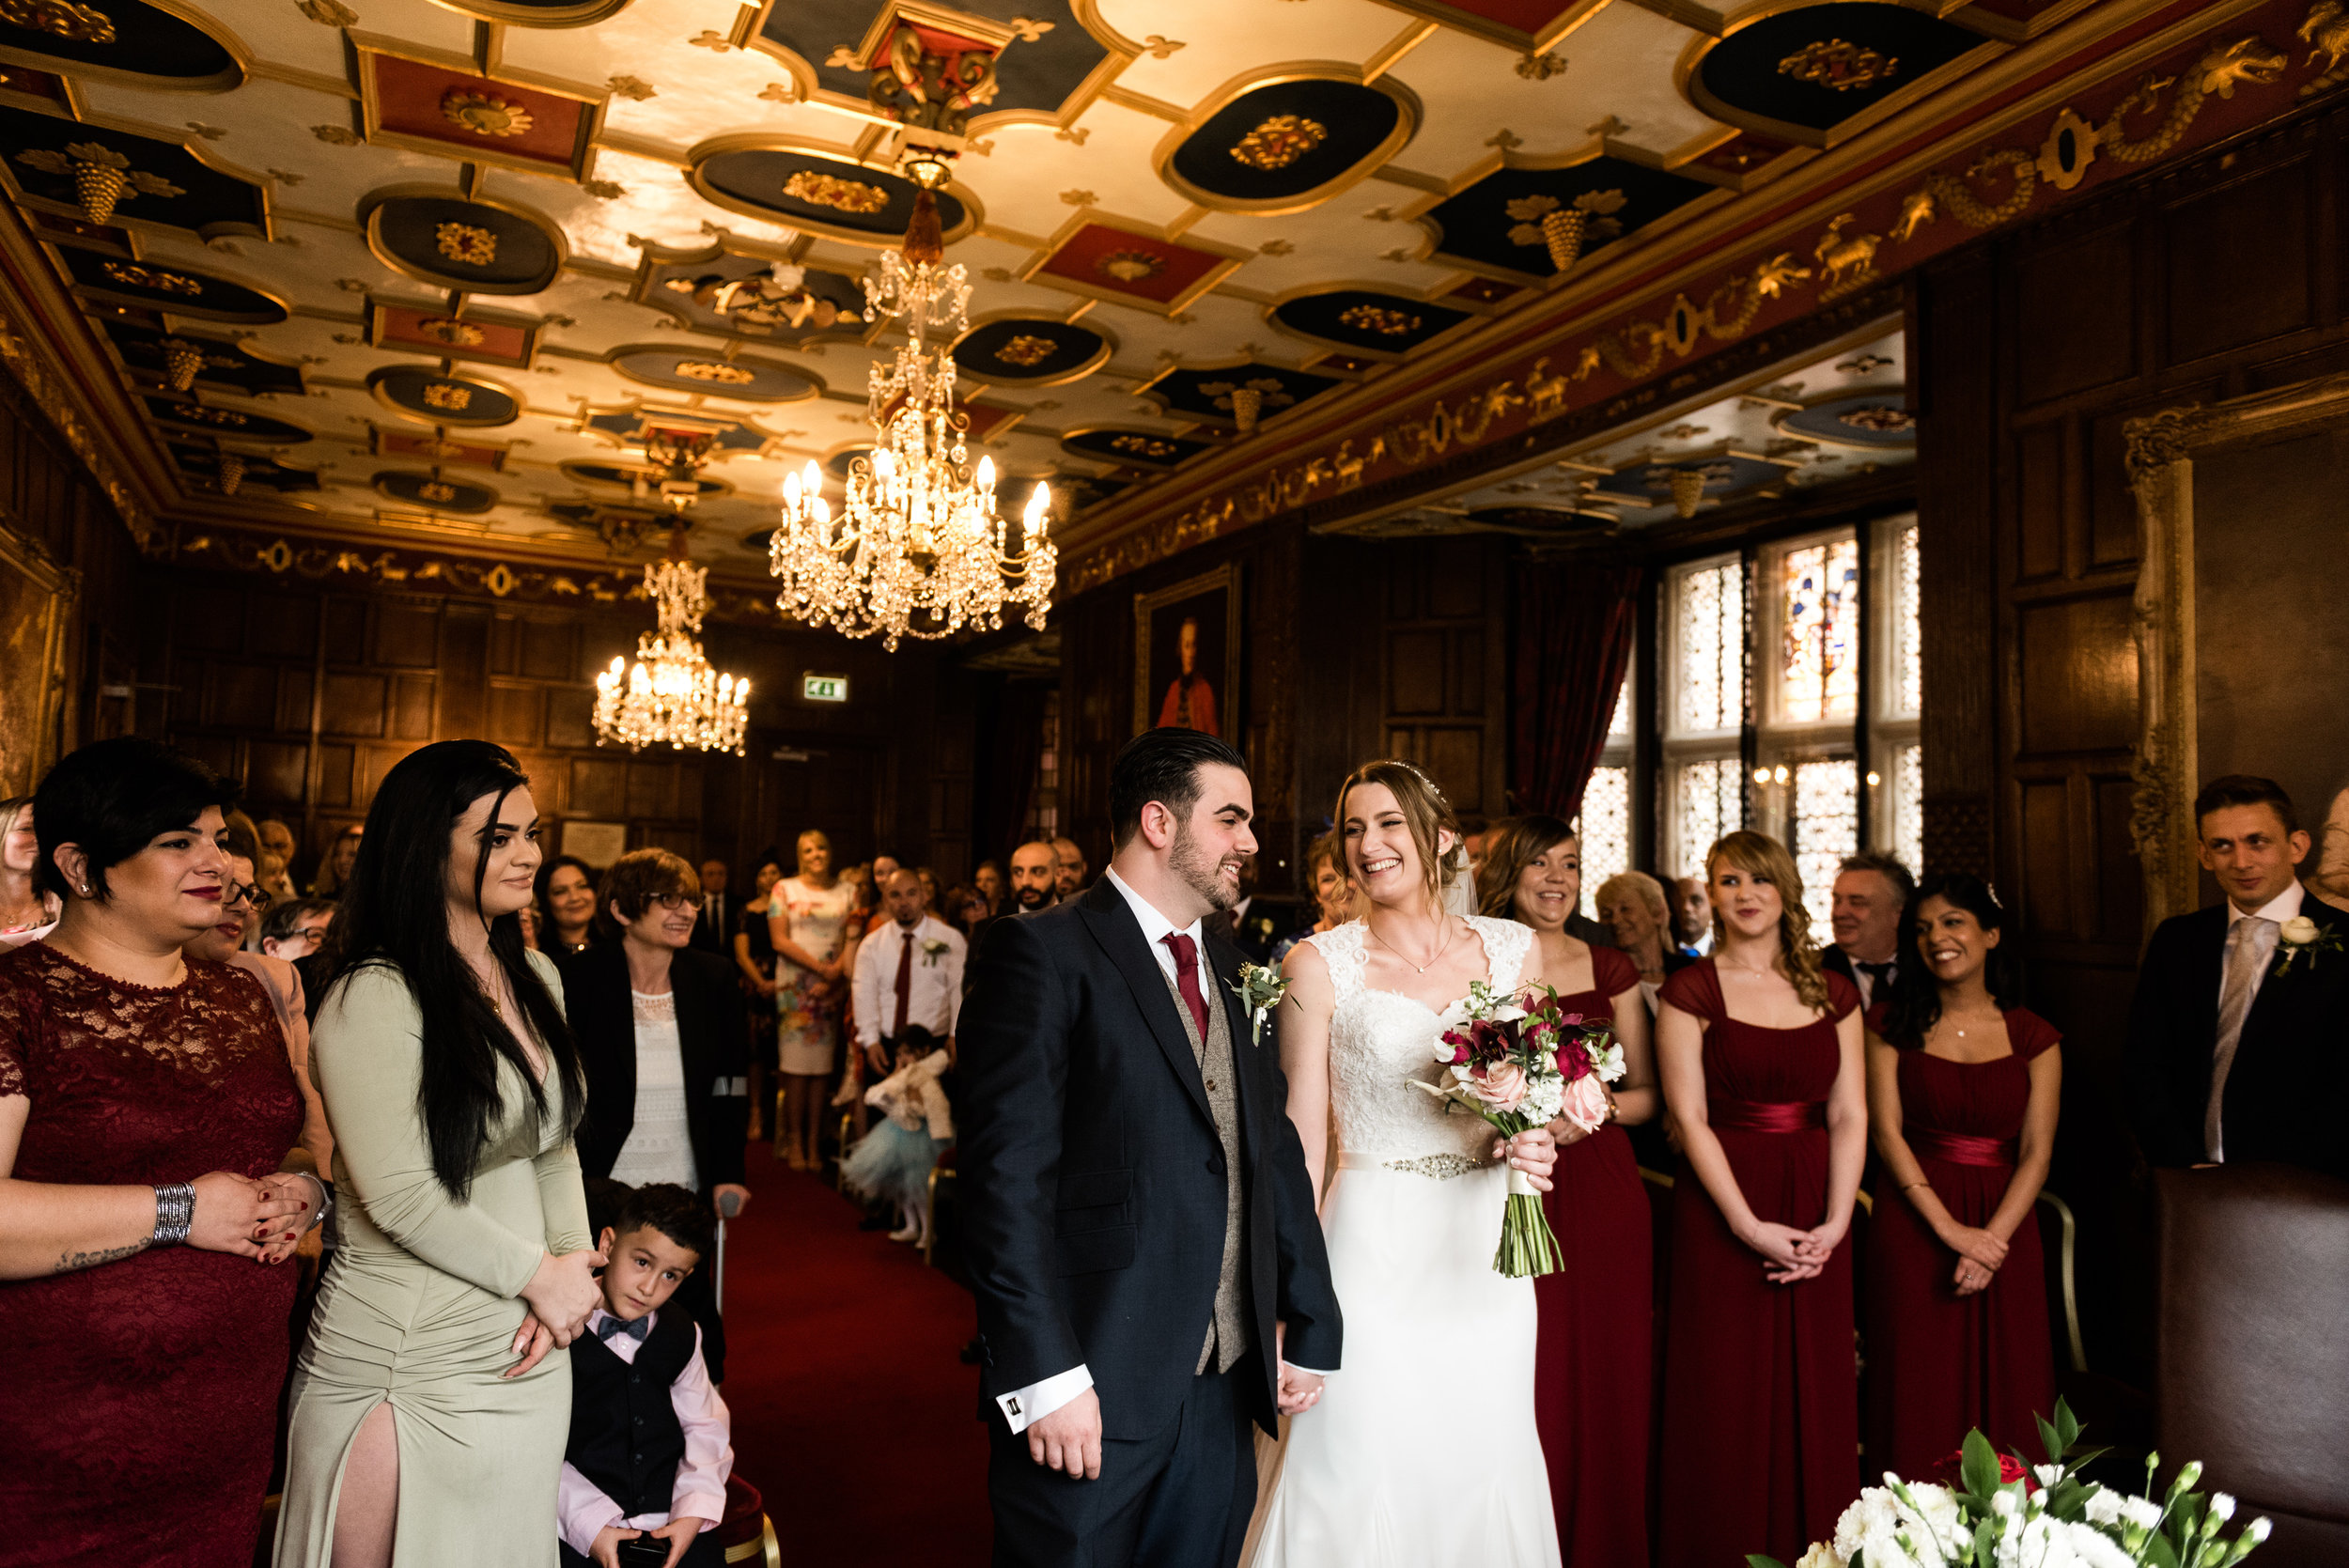 Birmingham Documentary Wedding Photography at New Hall, Sutton Coldfield Turkish Red Candid Reportage - Jenny Harper-27.jpg